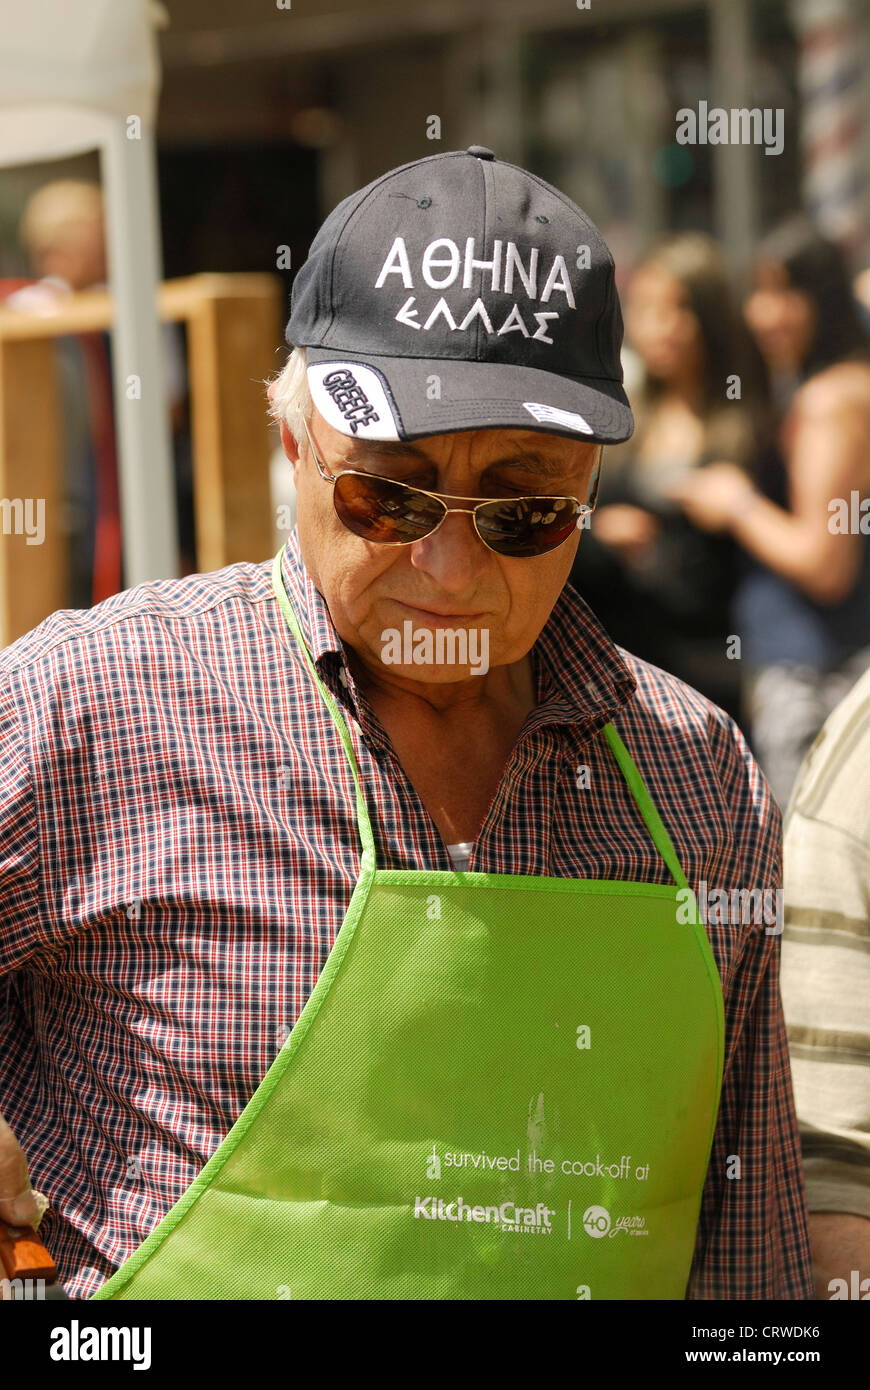 Man wearing an apron and a cap with Greek language on it during Greek Day Vancouver - Stock Image